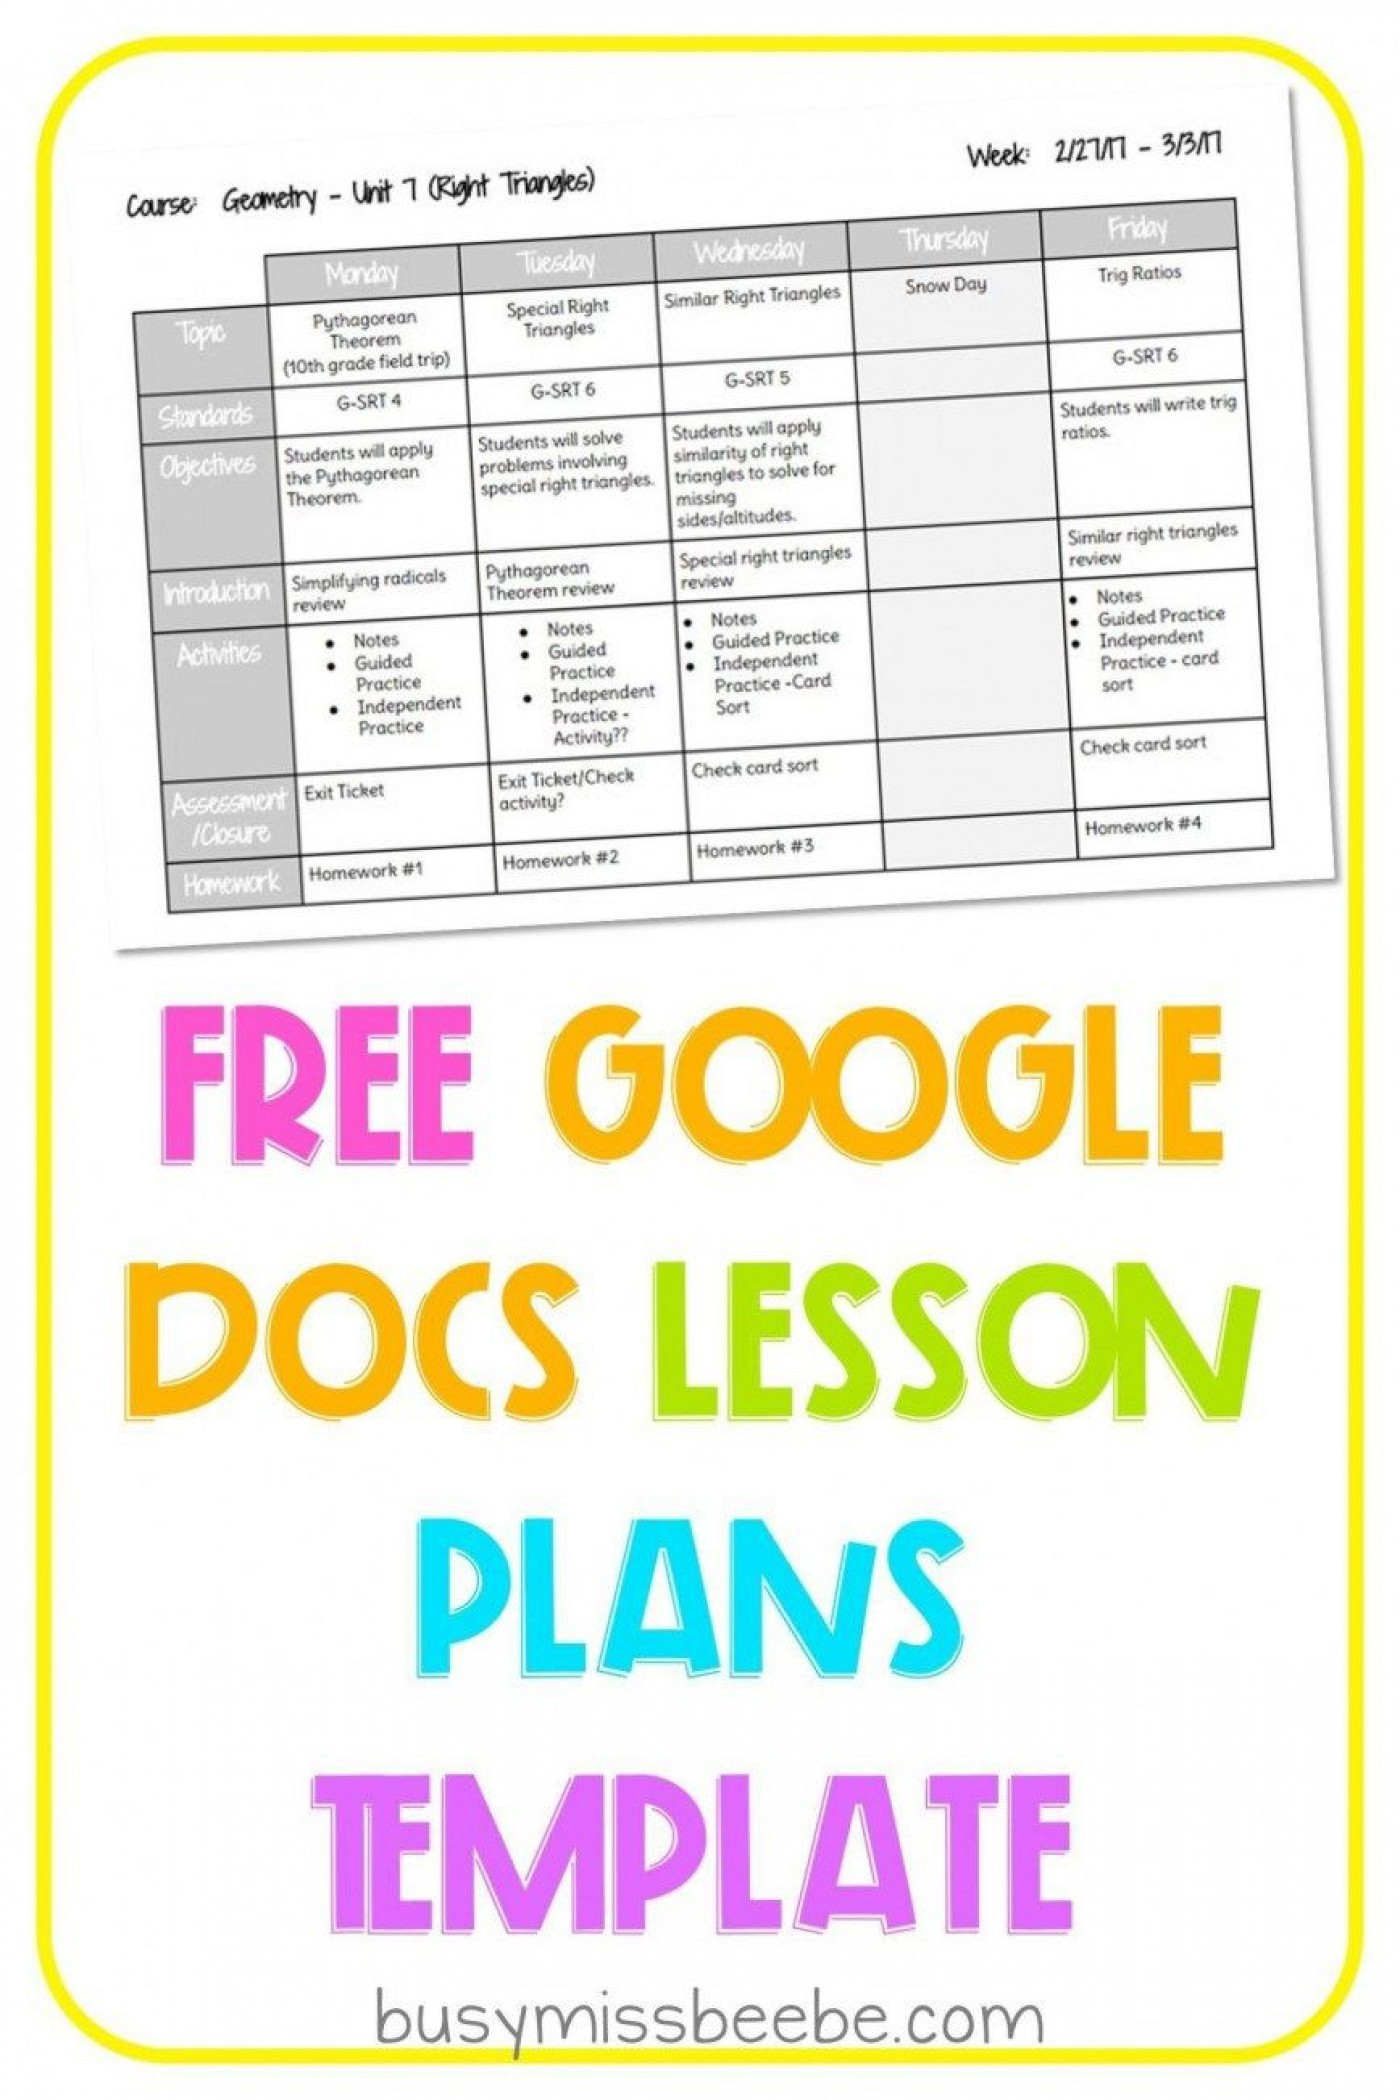 009 Impressive Weekly Lesson Plan Template Google Doc High Def  Ubd Siop1400